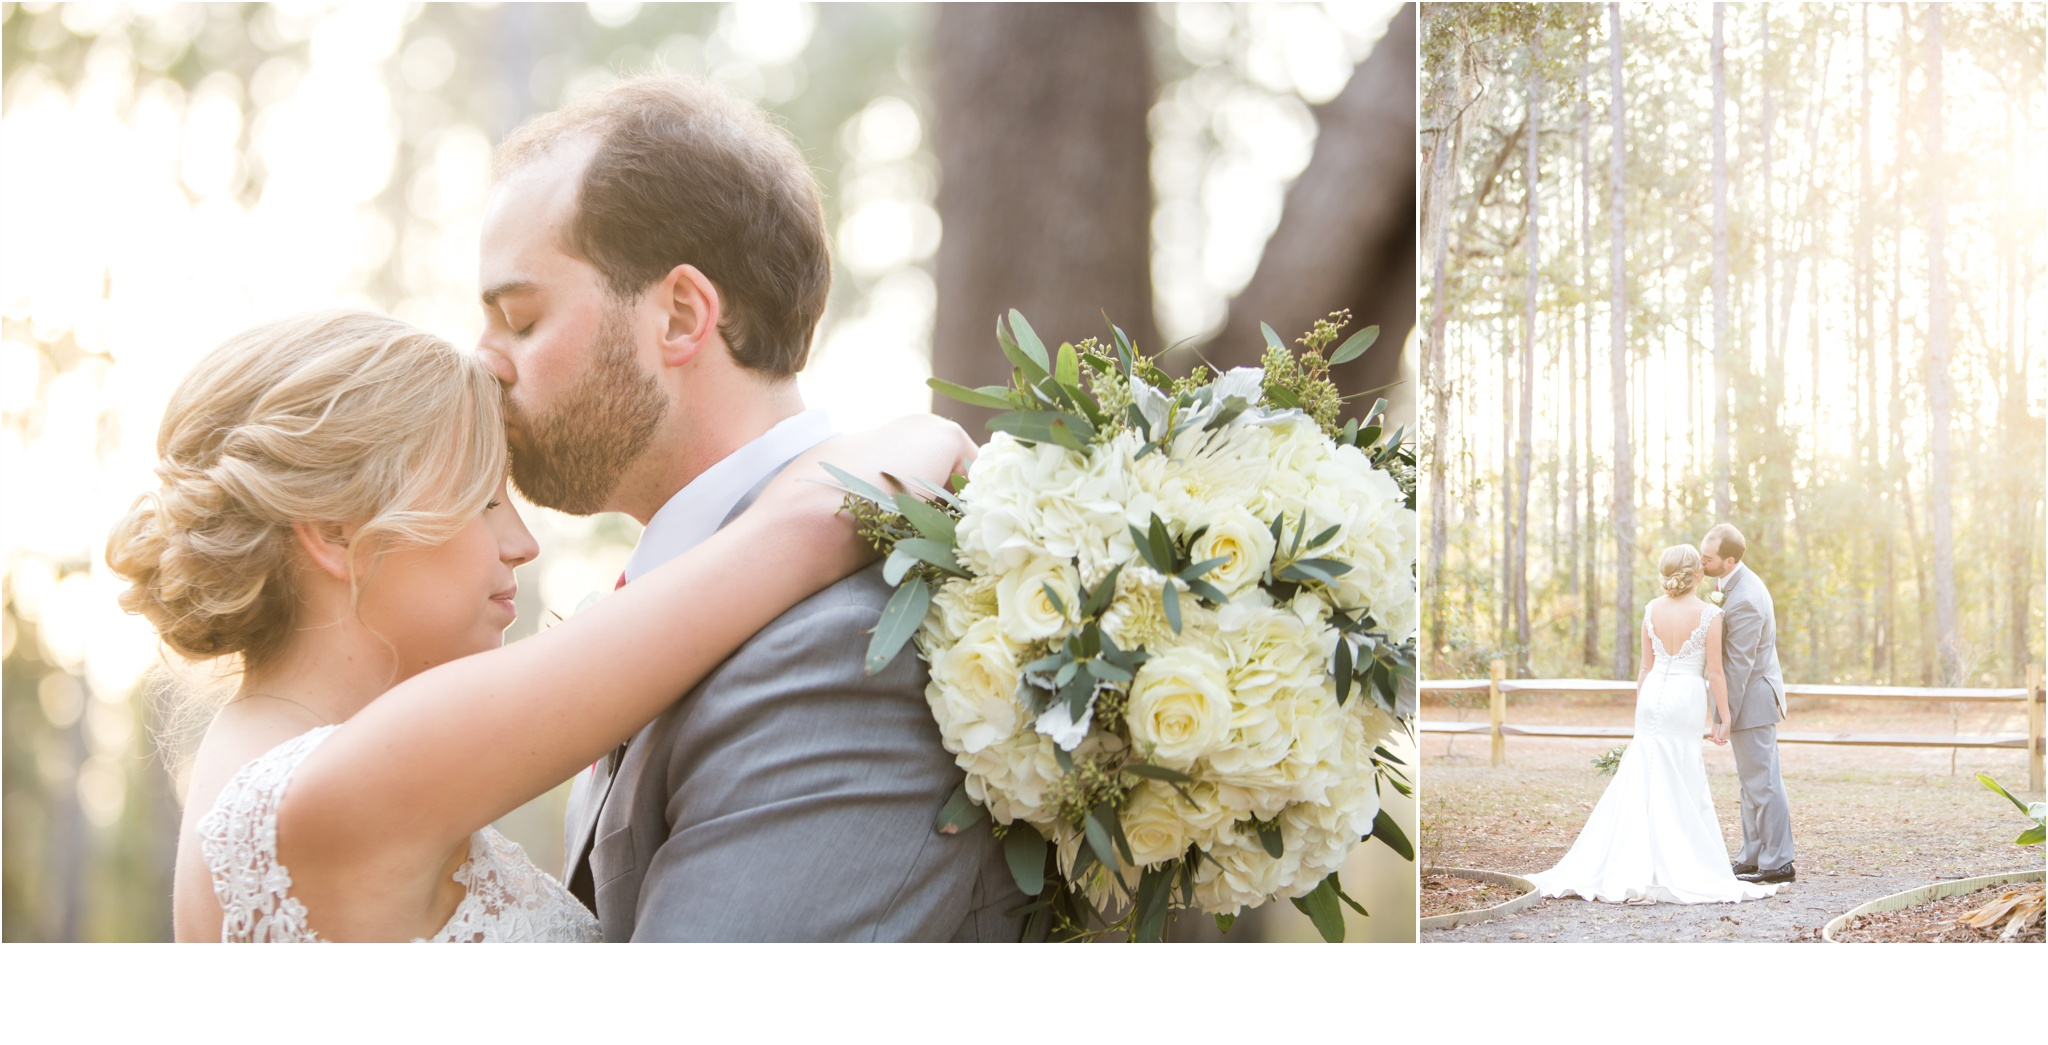 Rainey_Gregg_Photography_St._Simons_Island_Georgia_California_Wedding_Portrait_Photography_0494.jpg